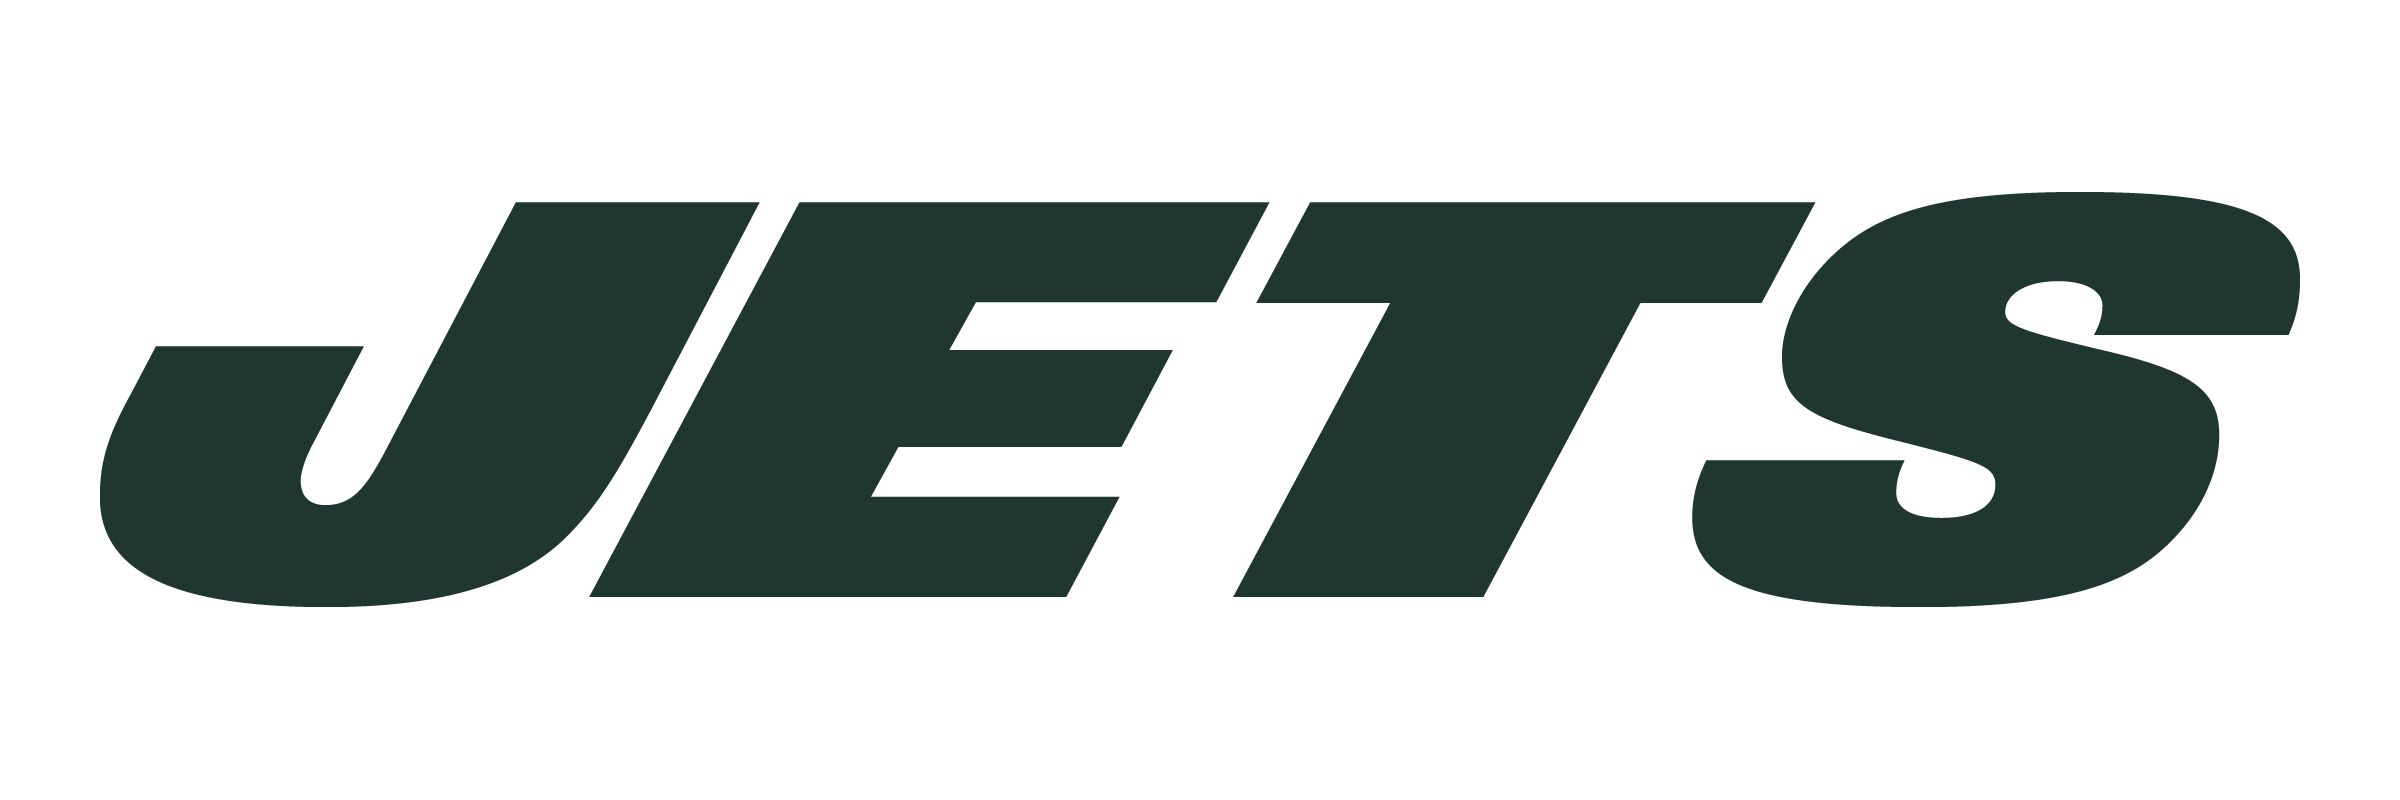 New York Jets Logo PNG Transparent & SVG Vector.